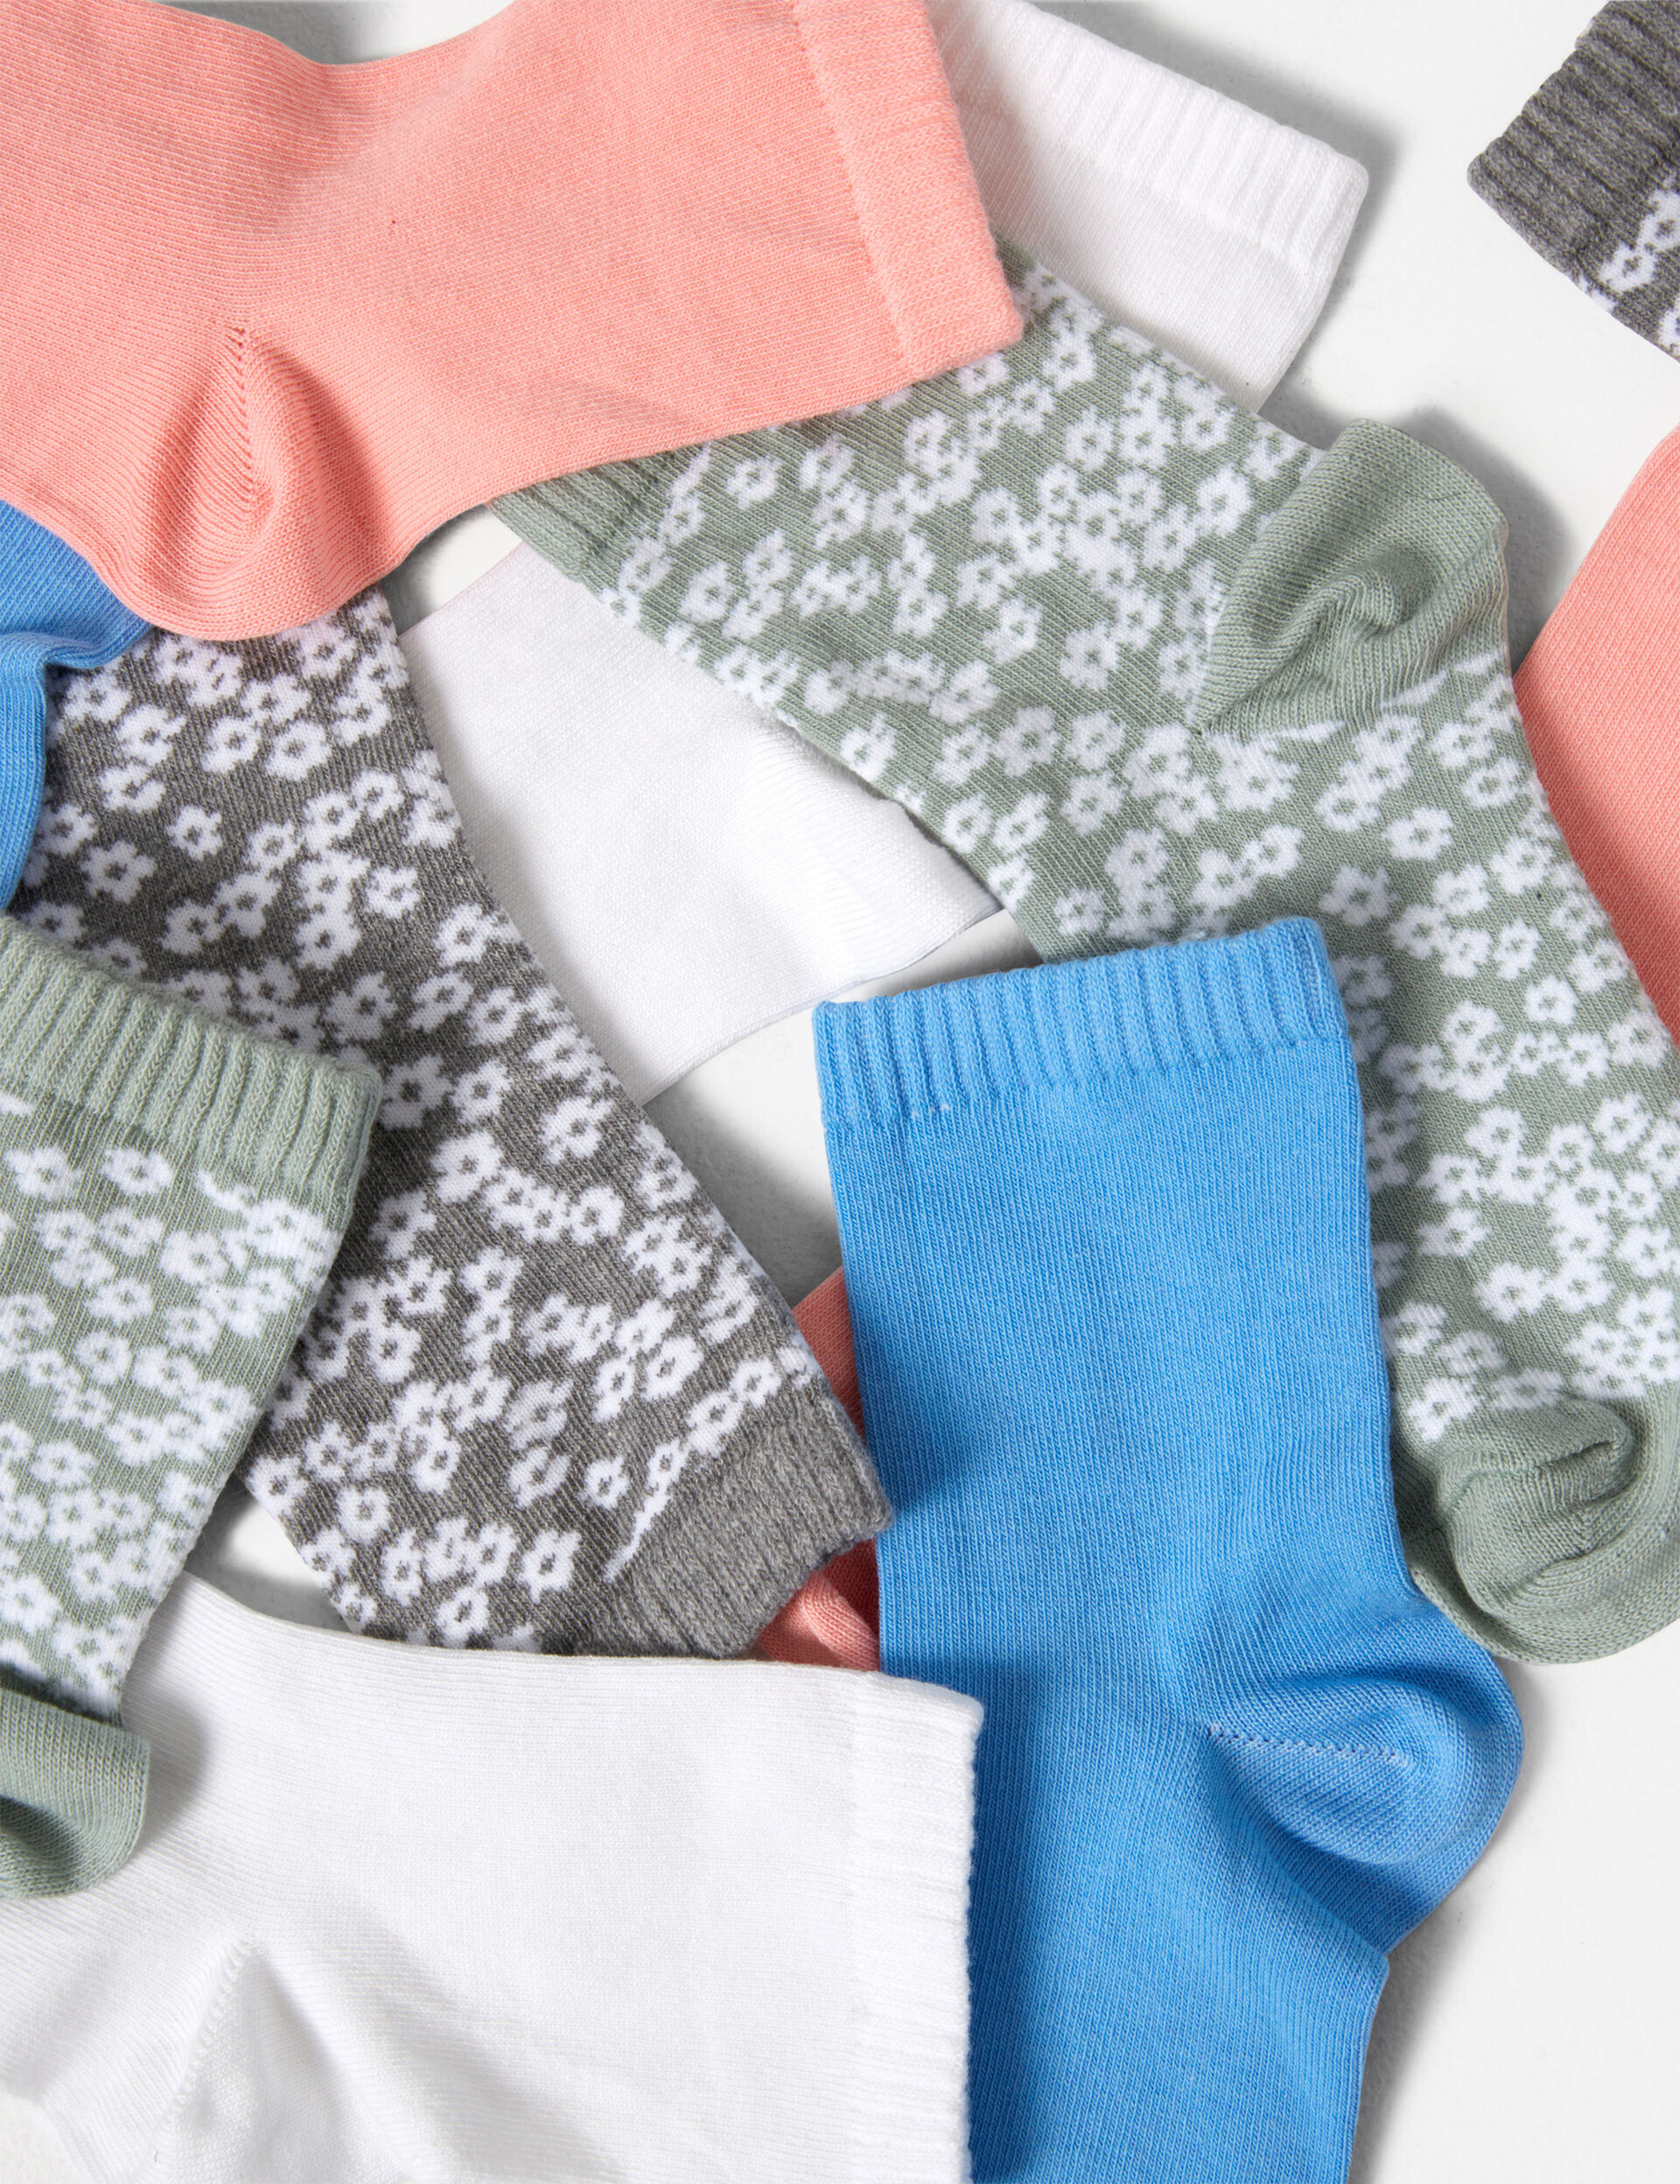 Chaussettes fleuries